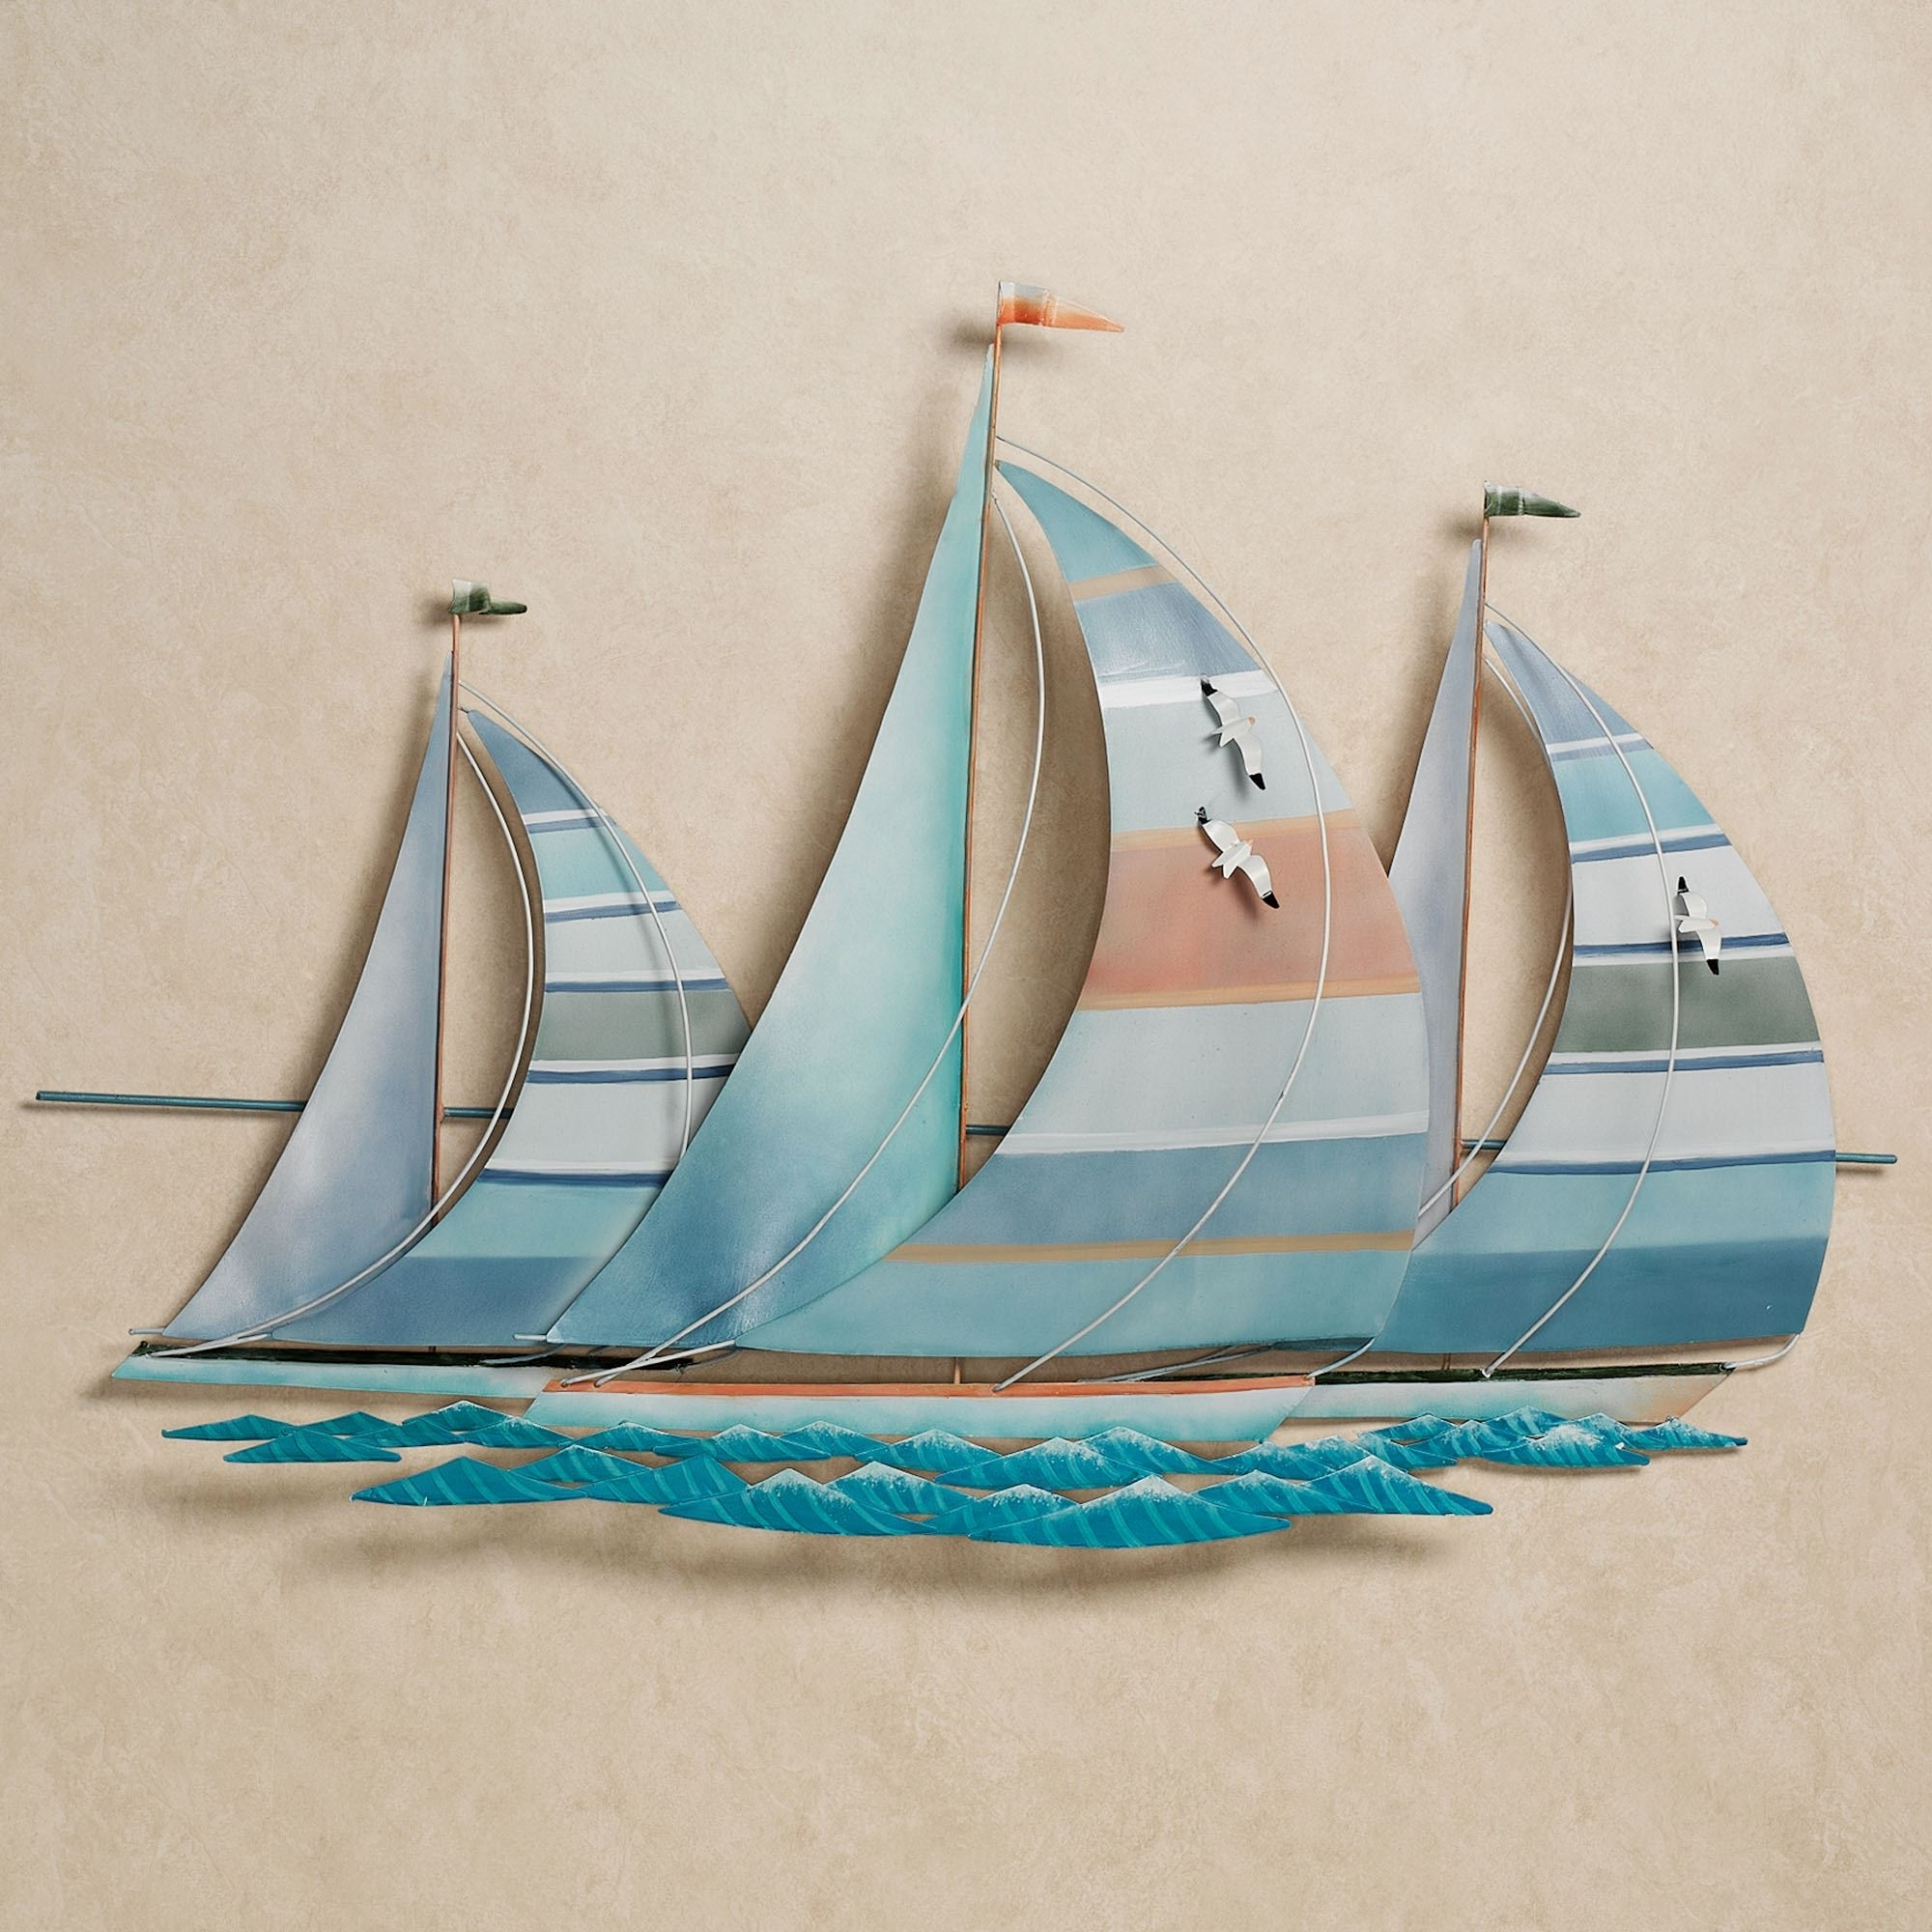 Sailboat Metal Wall Art With Regard To Fashionable Metal Sailboat Wall Decor Metal Art Sailboats Wall Sculpture (View 14 of 15)